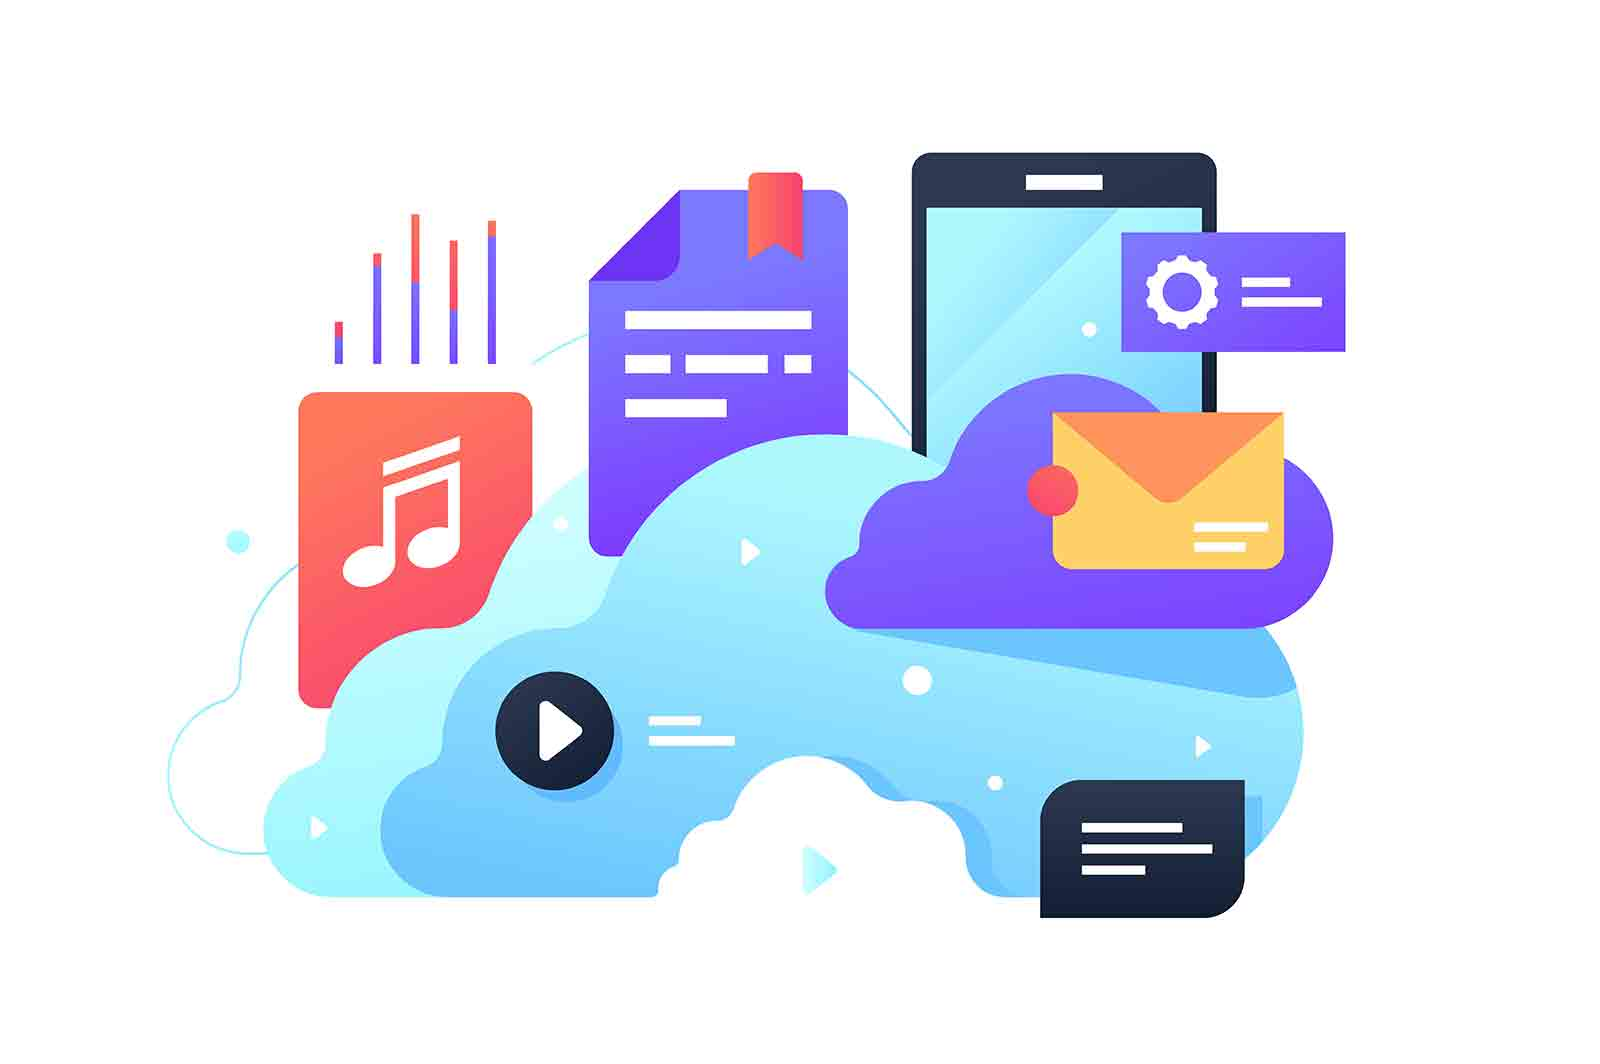 Files in cloud storage vector illustration. Computing service for storing data documents, photos and music on remote servers flat style design.